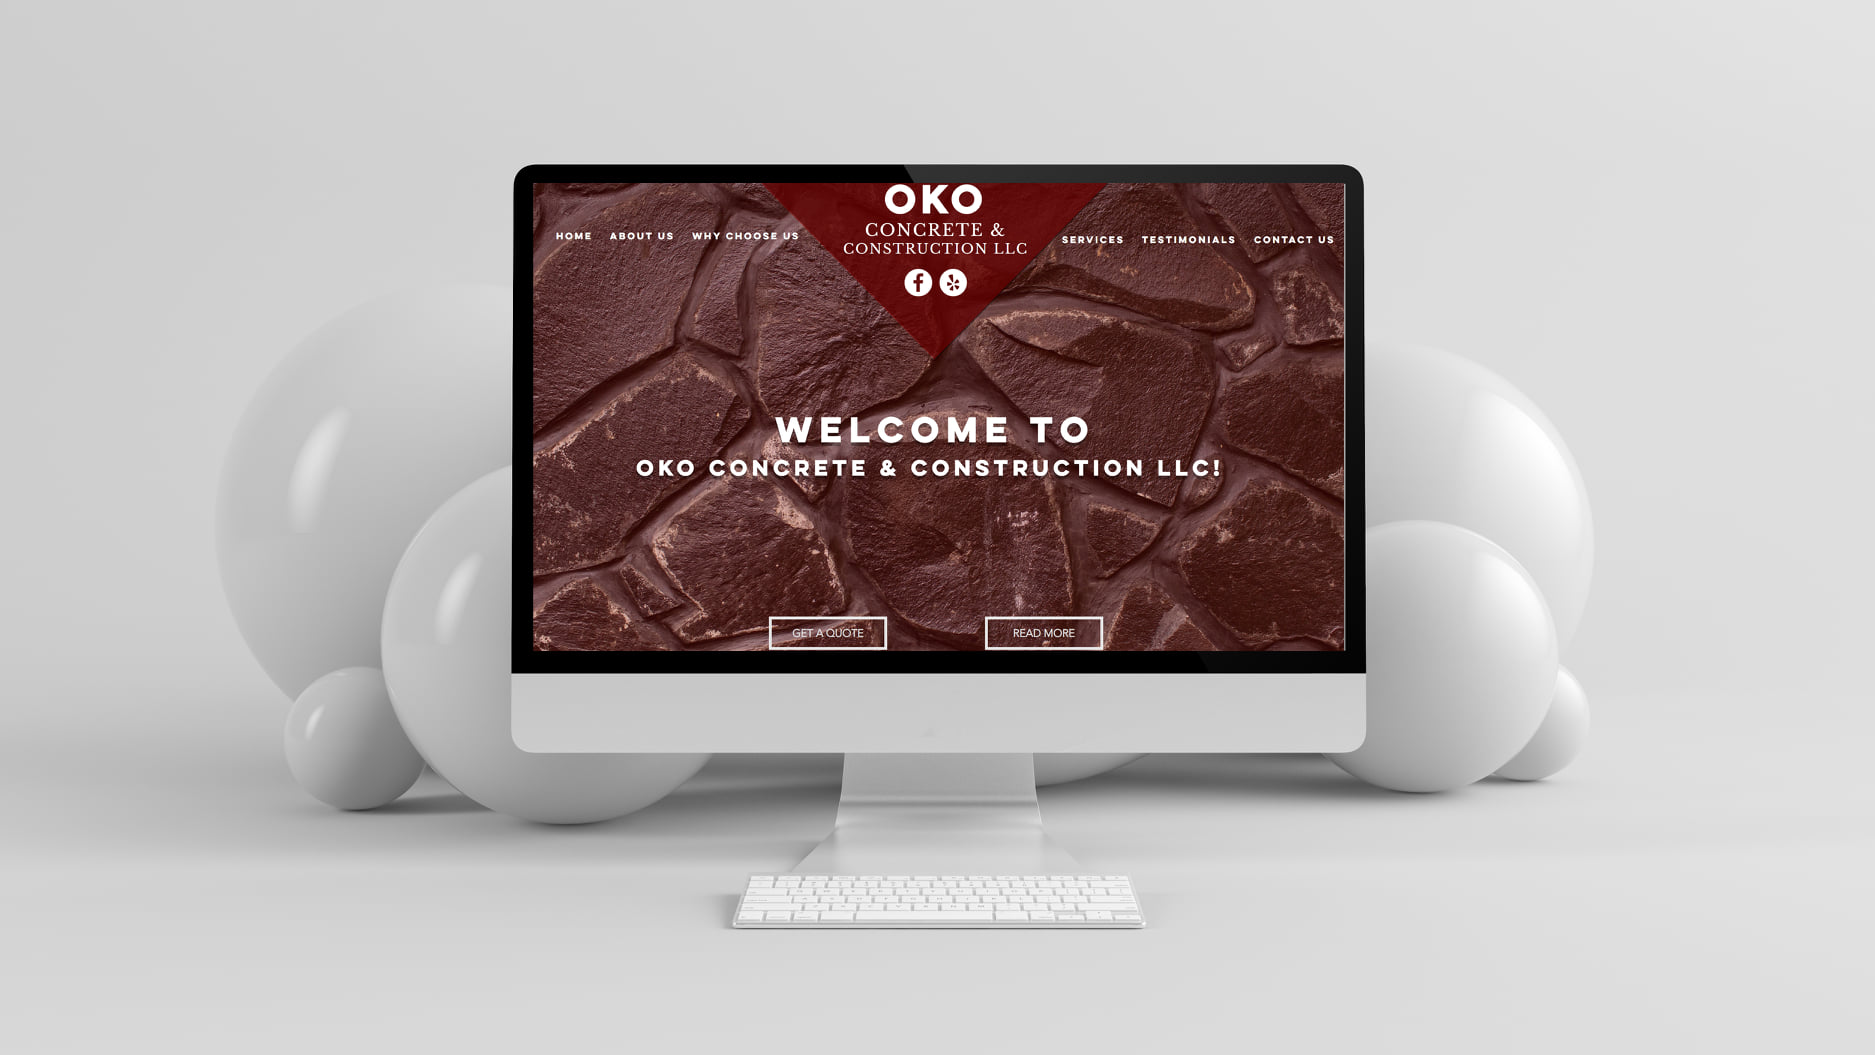 OKO Concrete & Construction